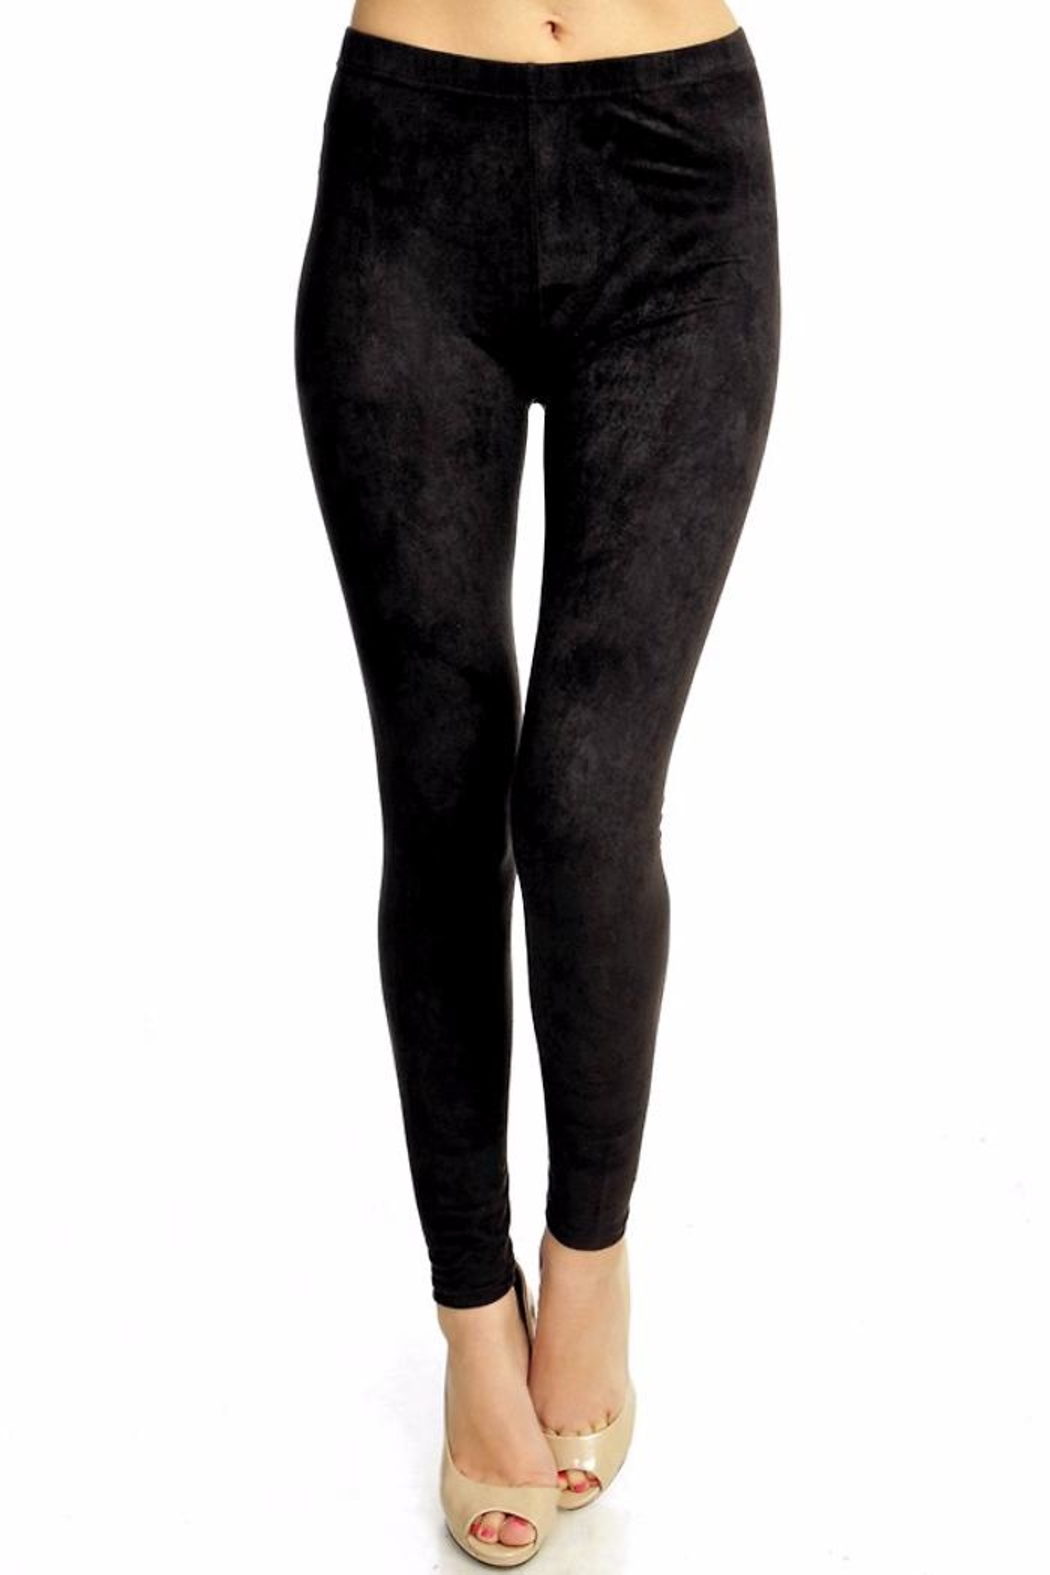 People Outfitter My Suede Leggings - Side Cropped Image